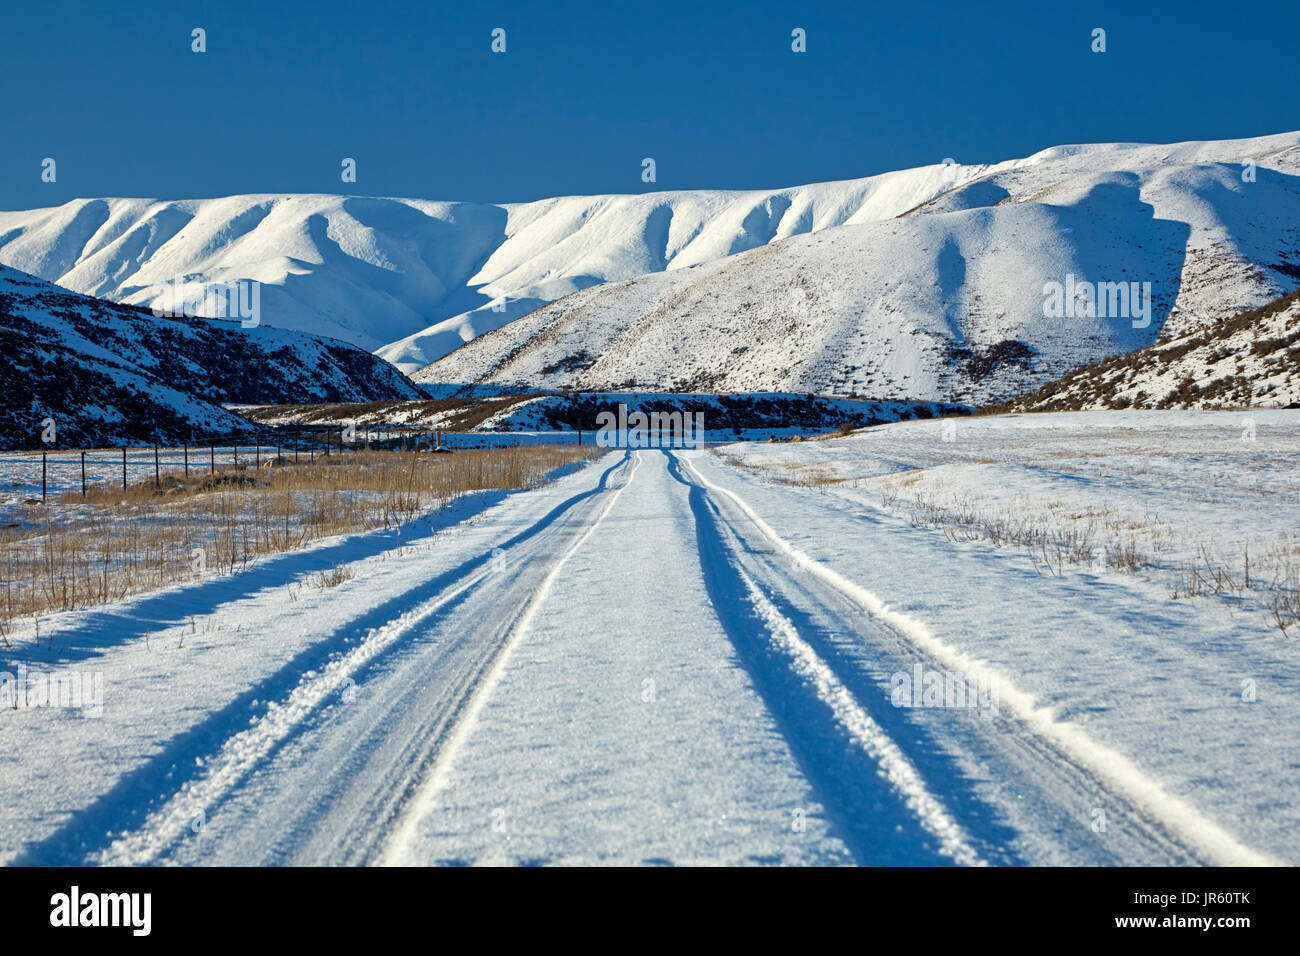 Hawkdun Range and snowy track to Falls Dam, Maniototo, Central Otago, South Island, New Zealand Stock Photo